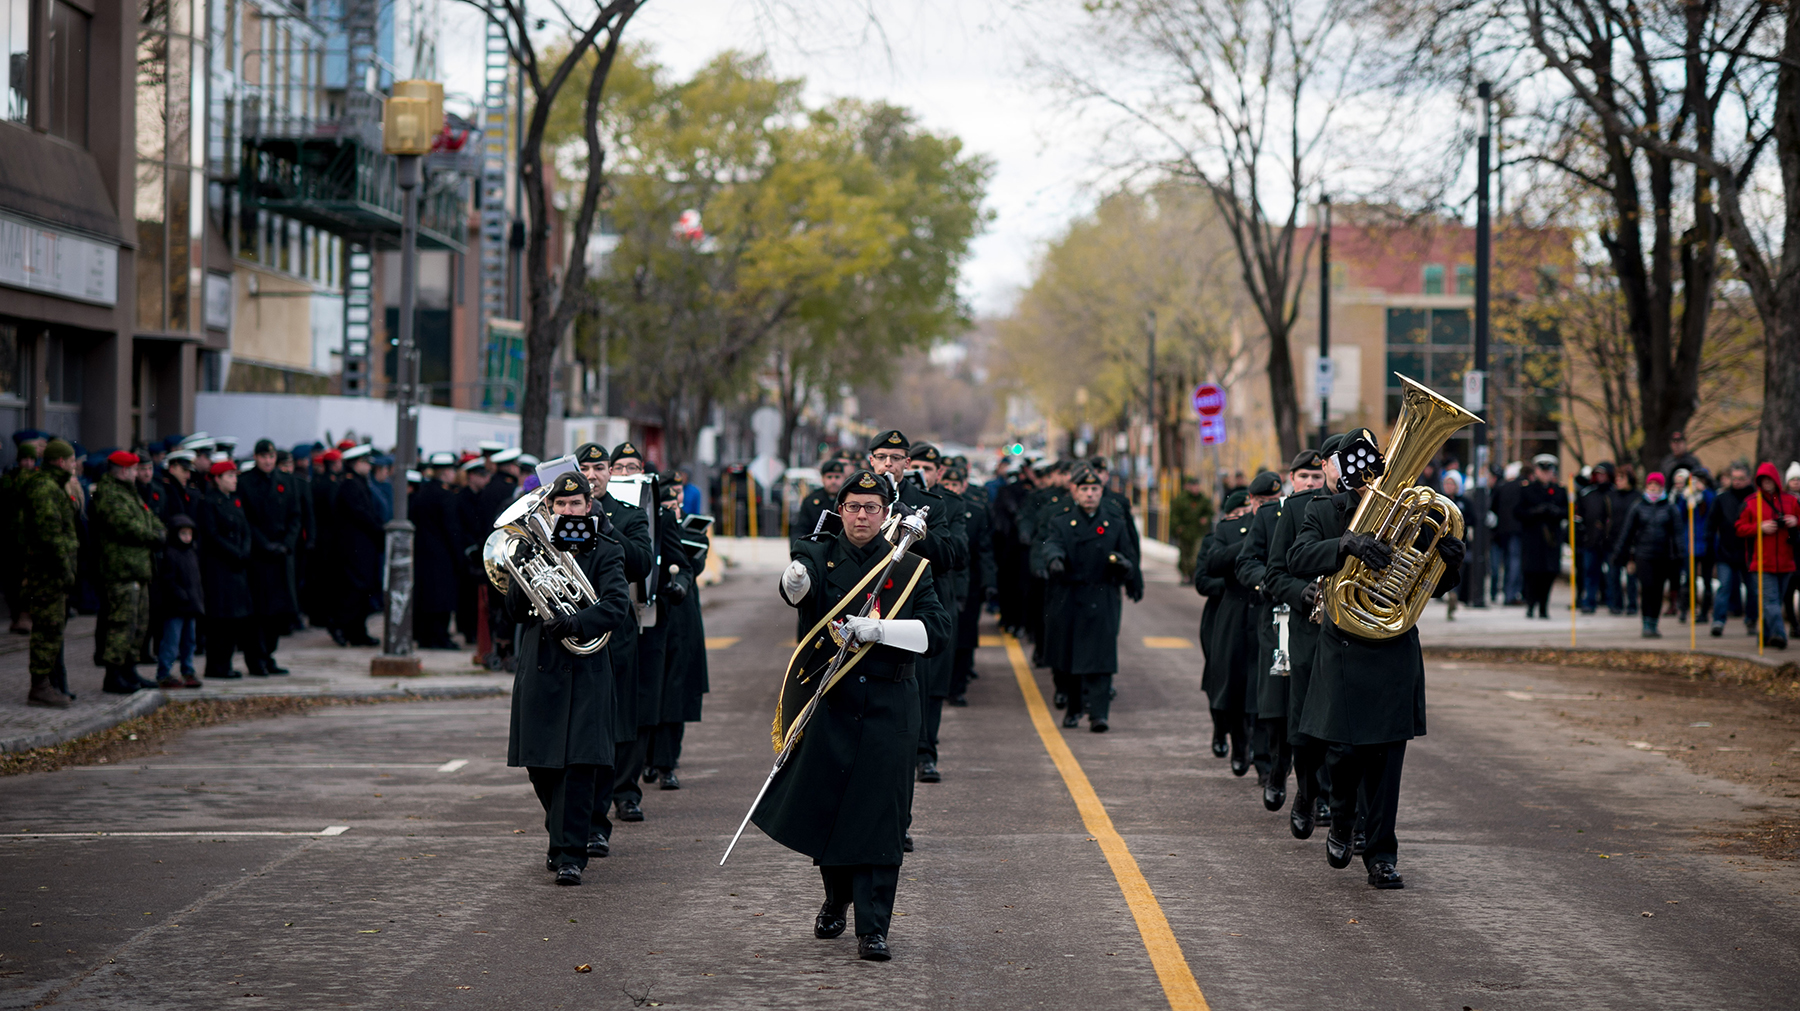 The Régiment du Saguenay band leads the parade past the Saguenay, Quebec, city hall during the Remembrance Day ceremony held on November 8, 2015. The parade comprised members of 2 Wing Bagotville, Quebec, and Her Majesty's Canadian Ship Champlain. PHOTO: Leading Seaman Alex Roy